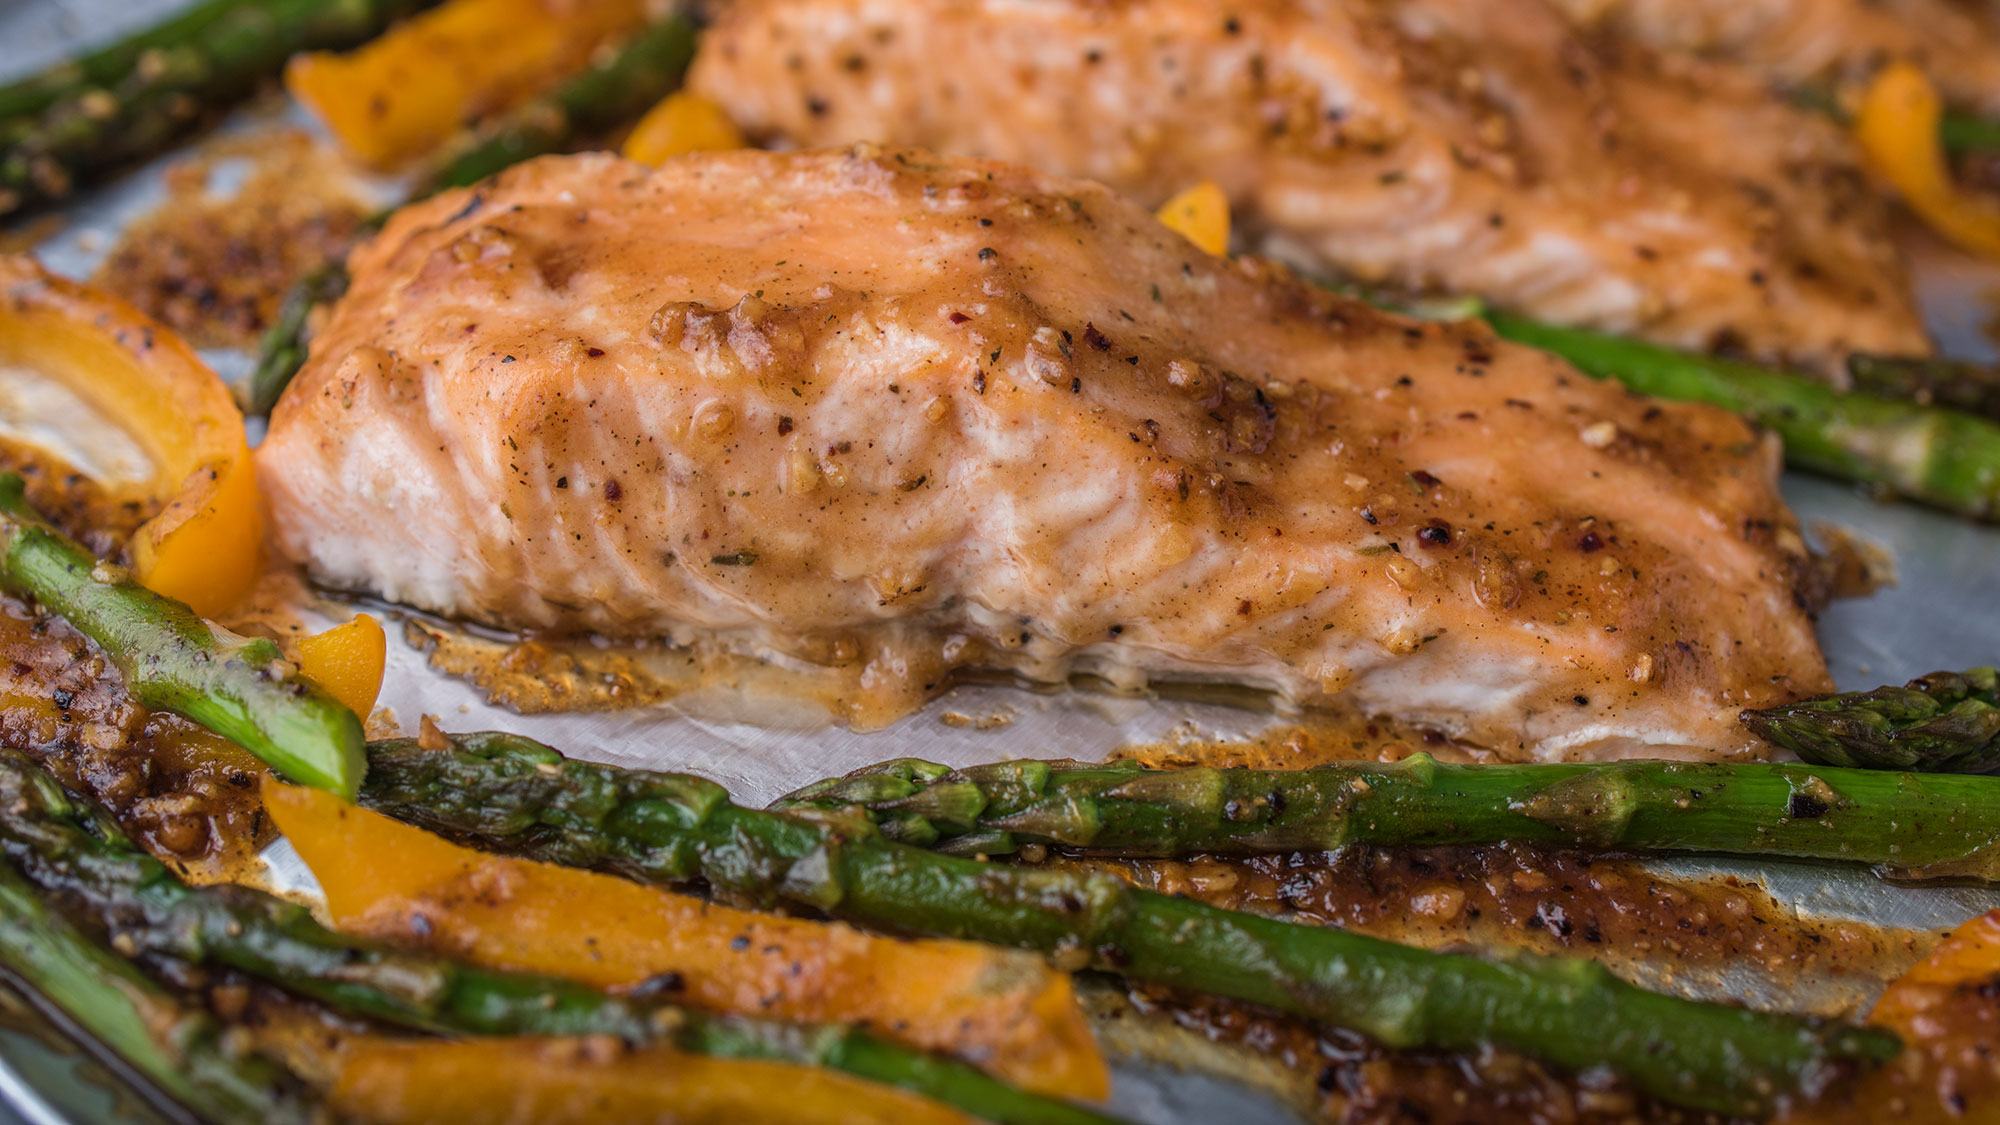 glazed_salmon_and_vegetables_2000x1125.jpg